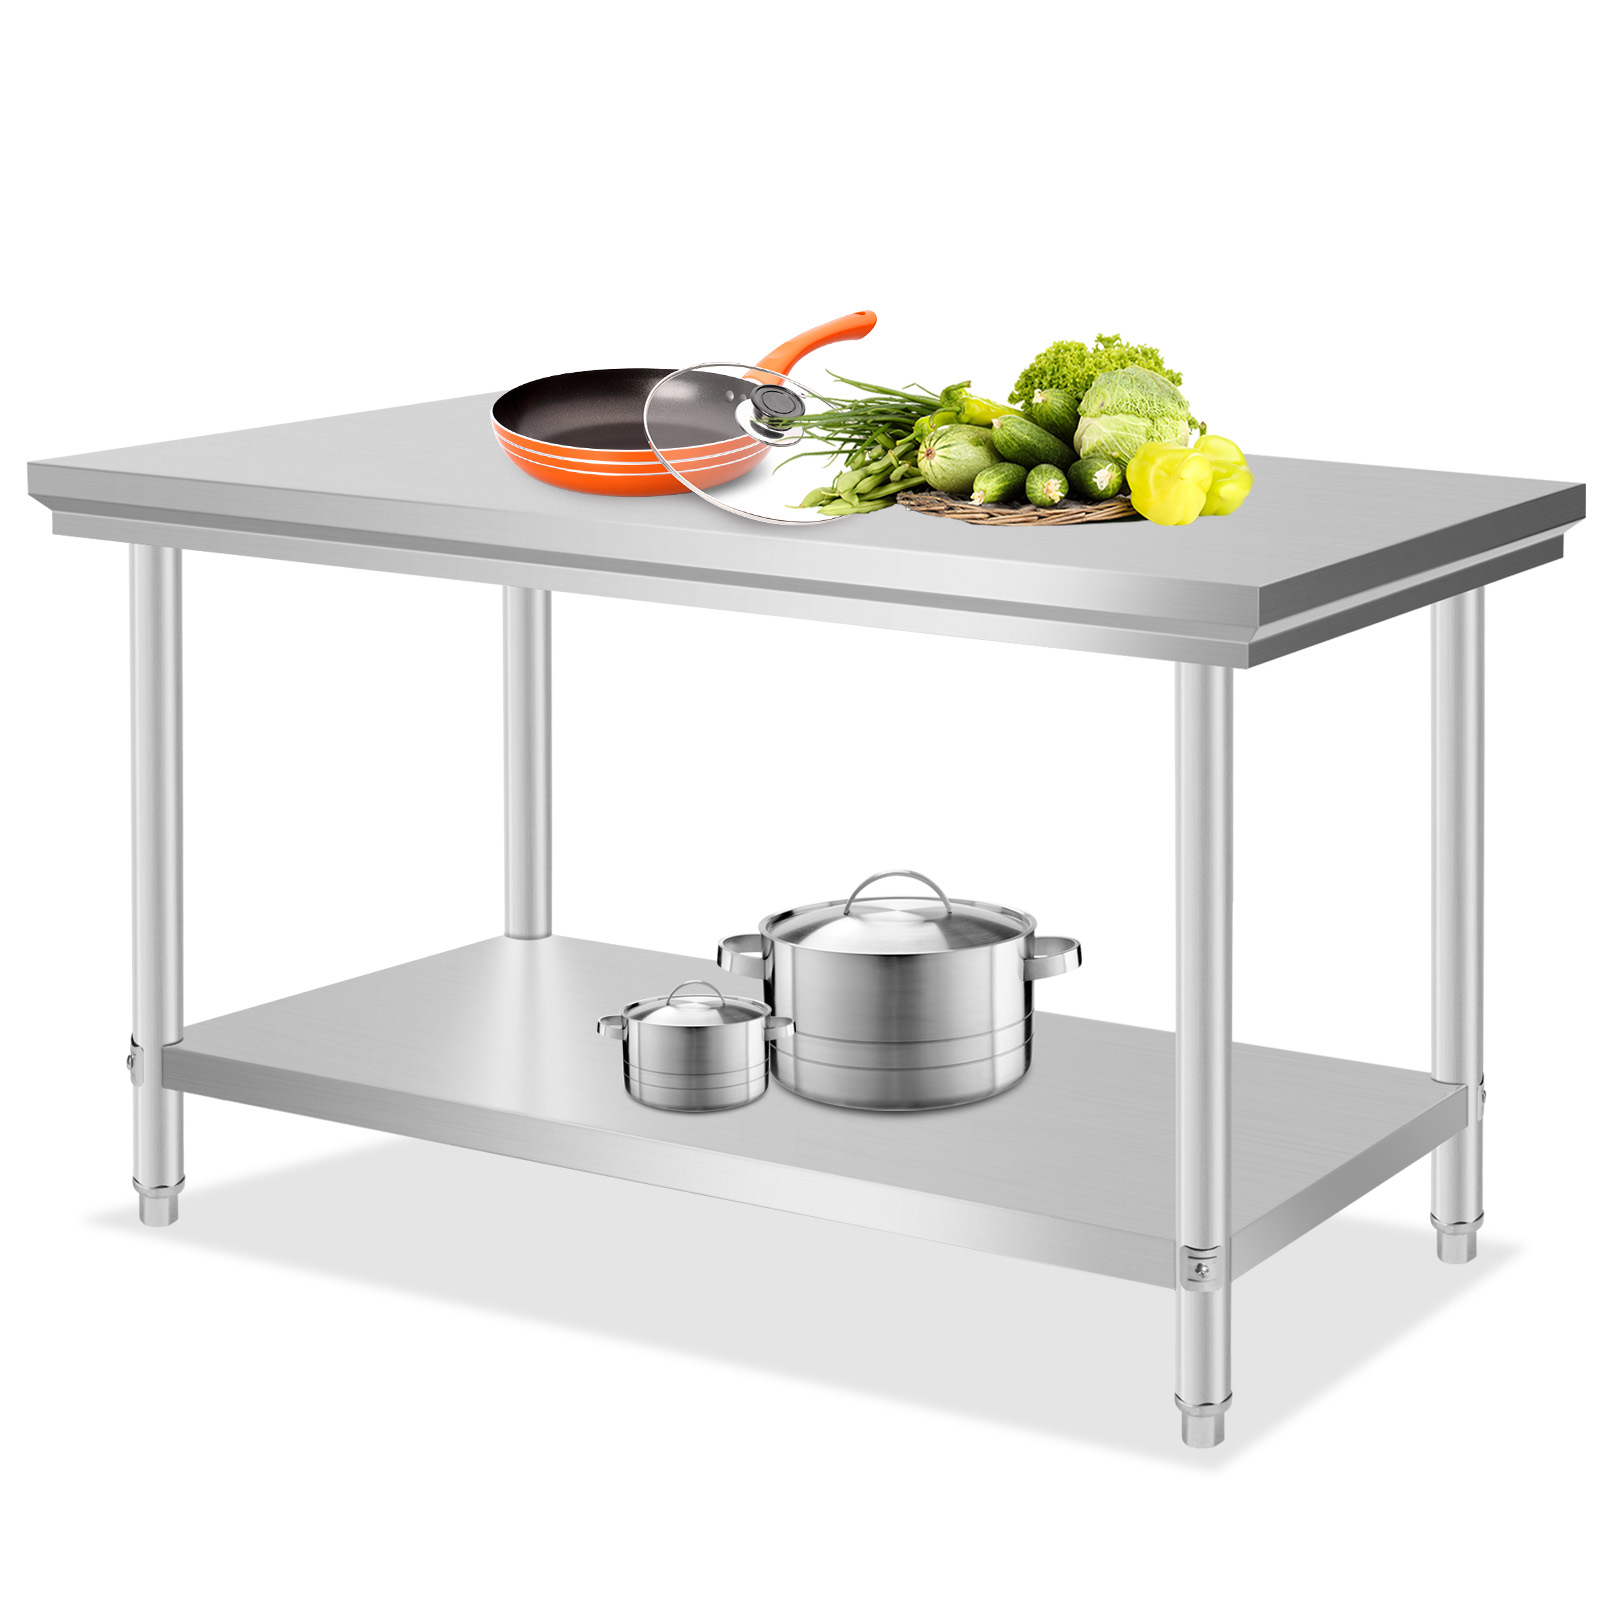 Stainless steel commercial kitchen work prep table 30 x 48 heavy duty nsf new ebay - Steel kitchen tables ...